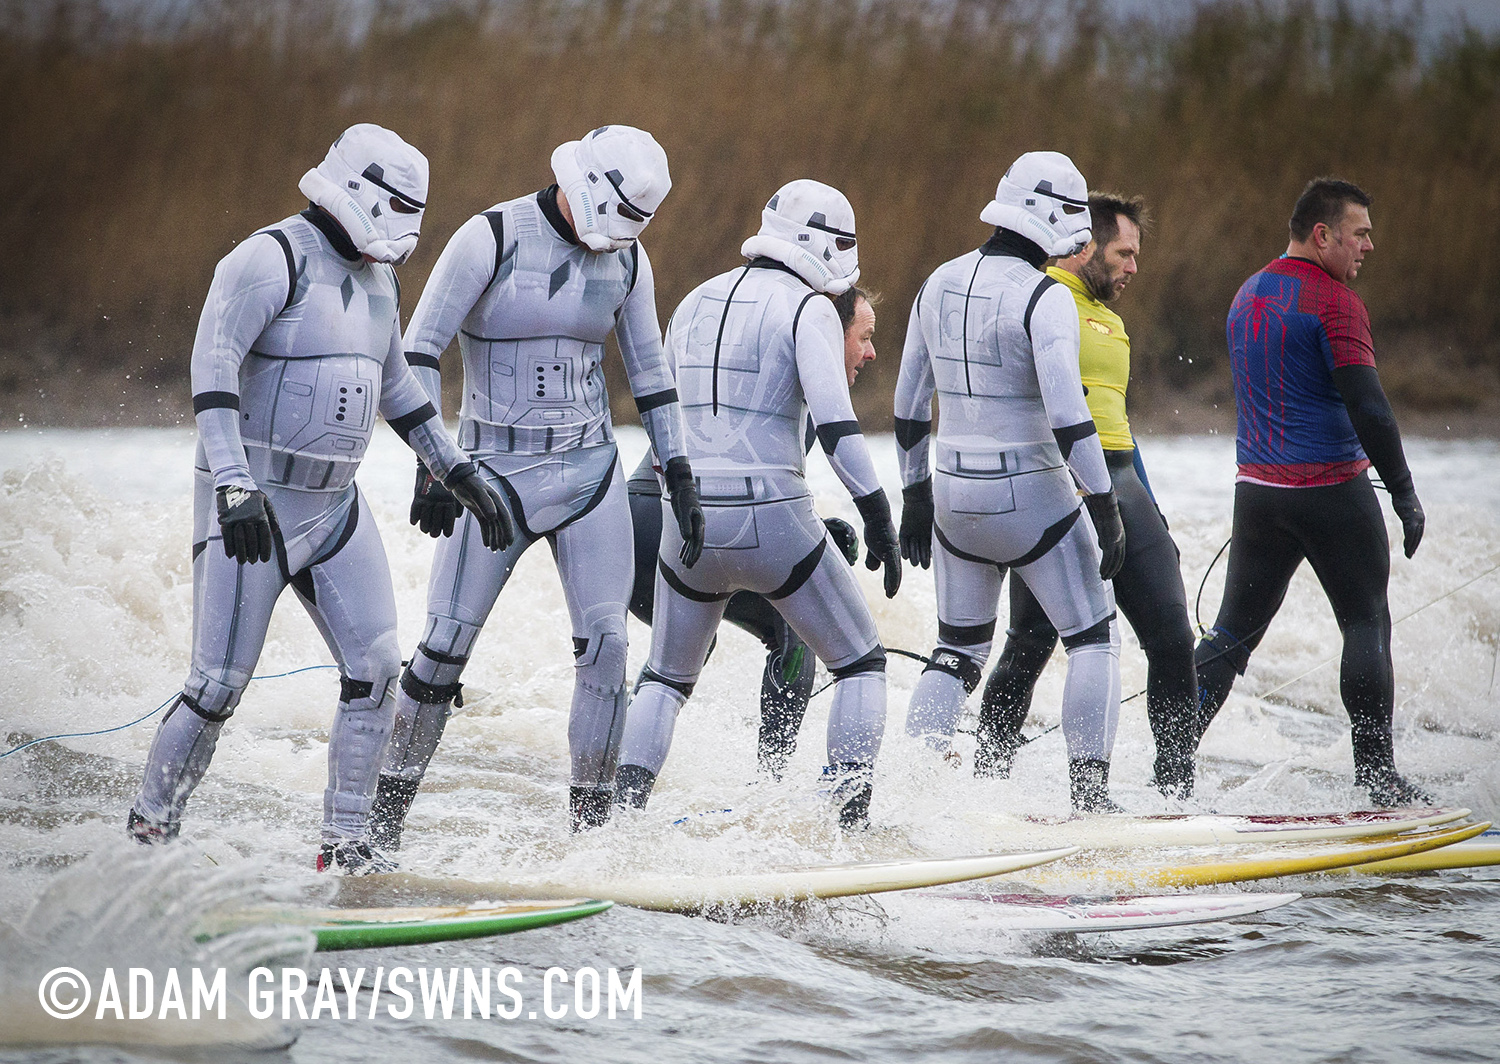 Star Wars Stormtroopers Take The Severn Bore Carvemag Com